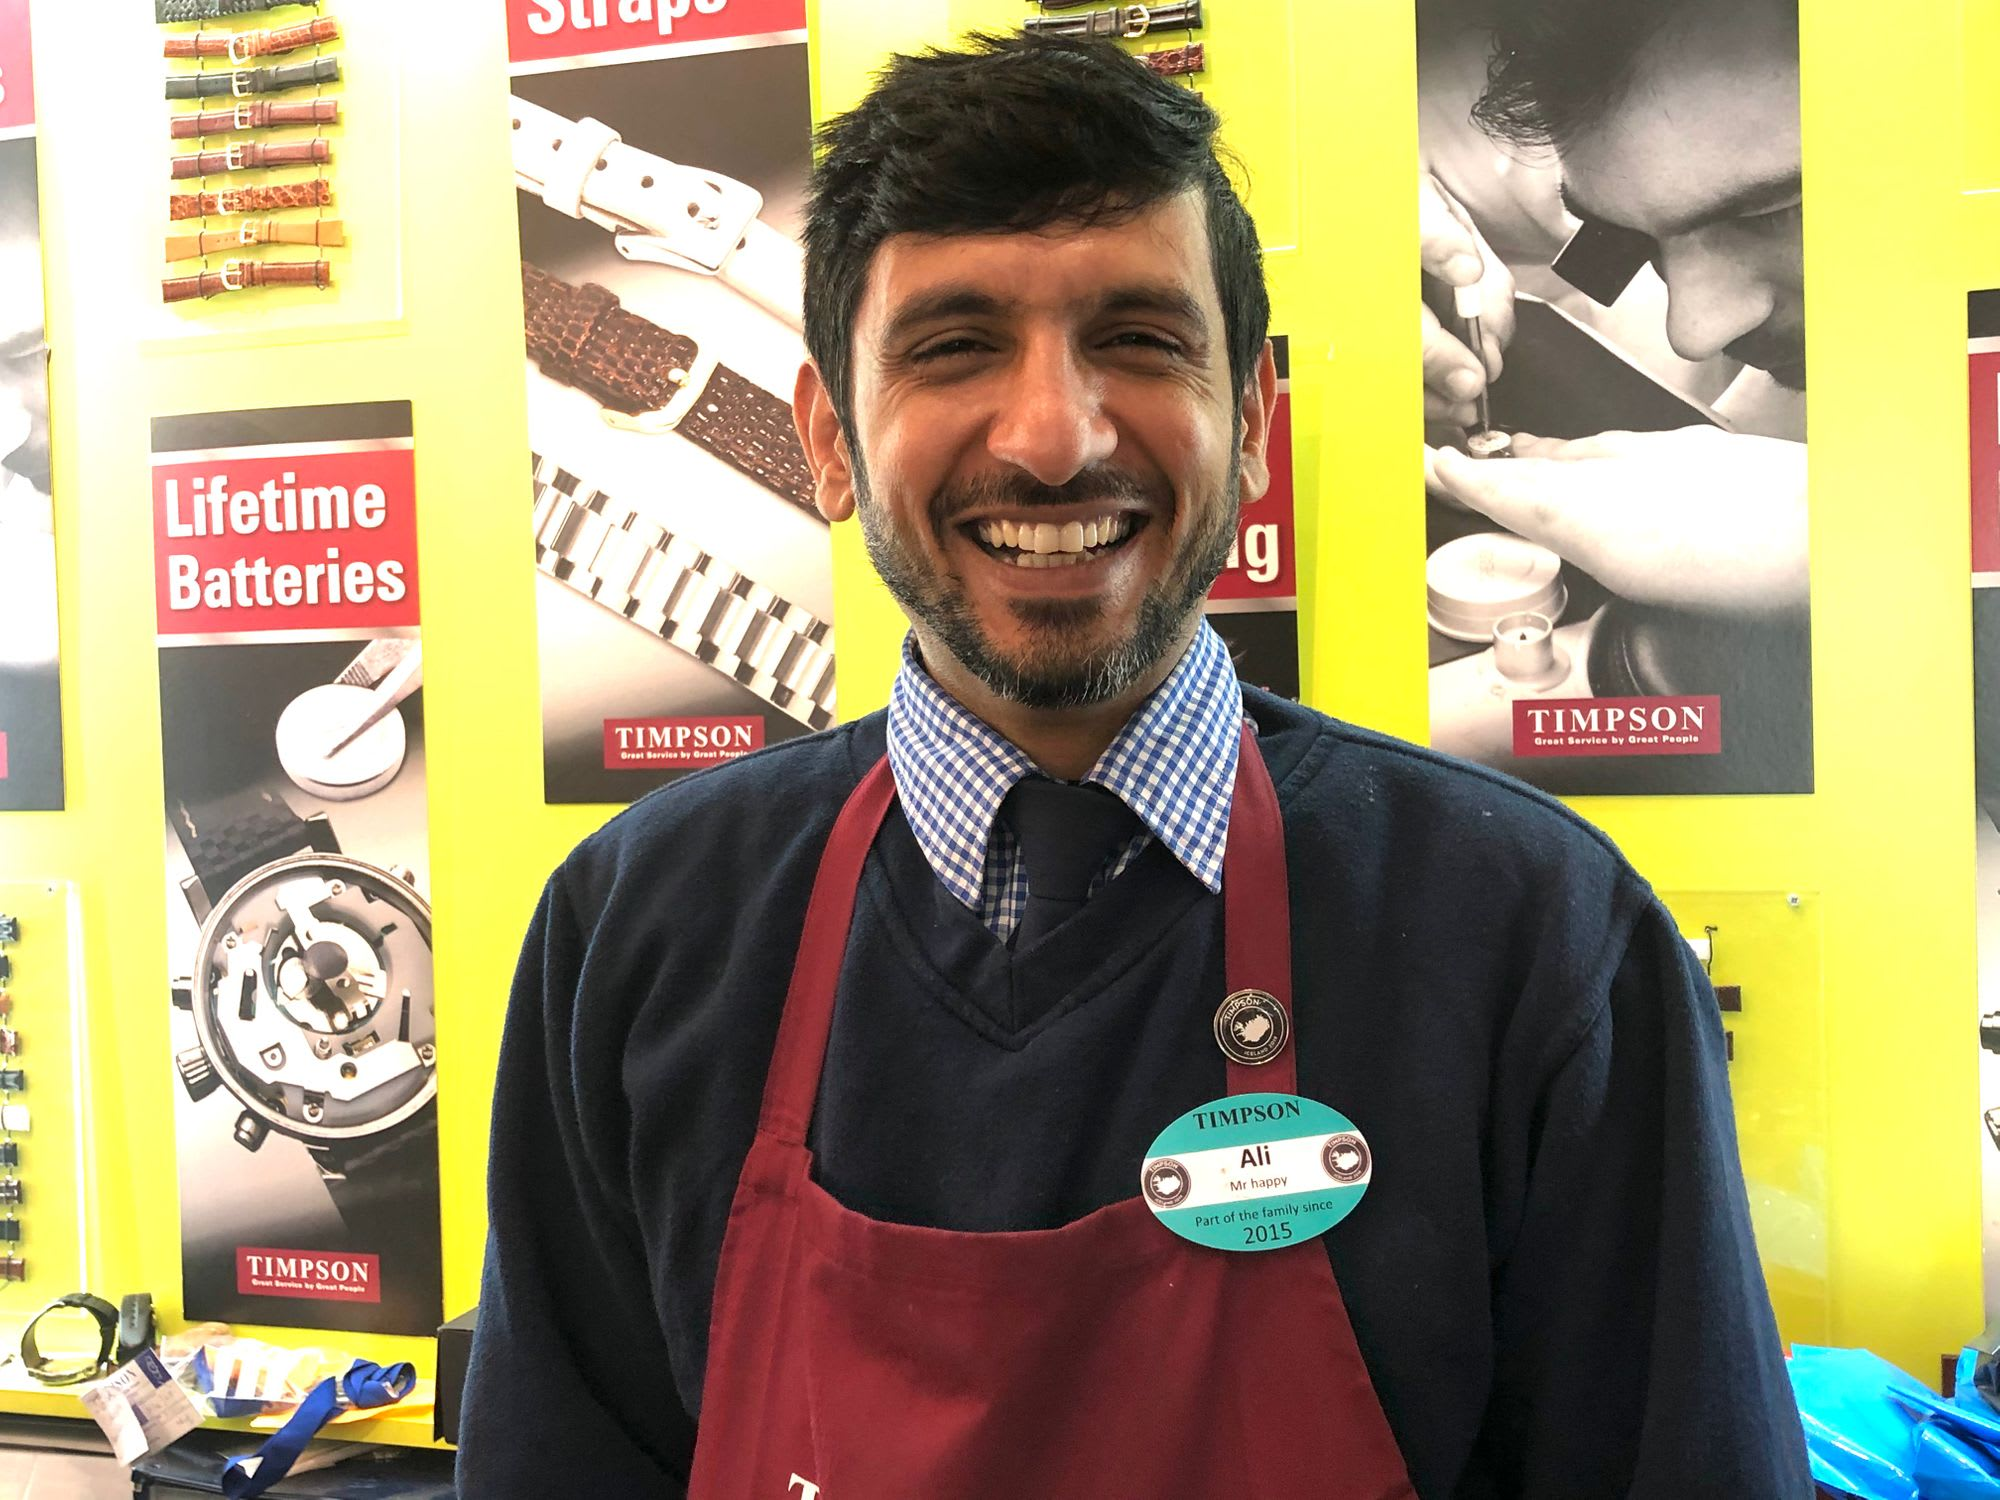 Timpson employees like Ali give exceptional customer service